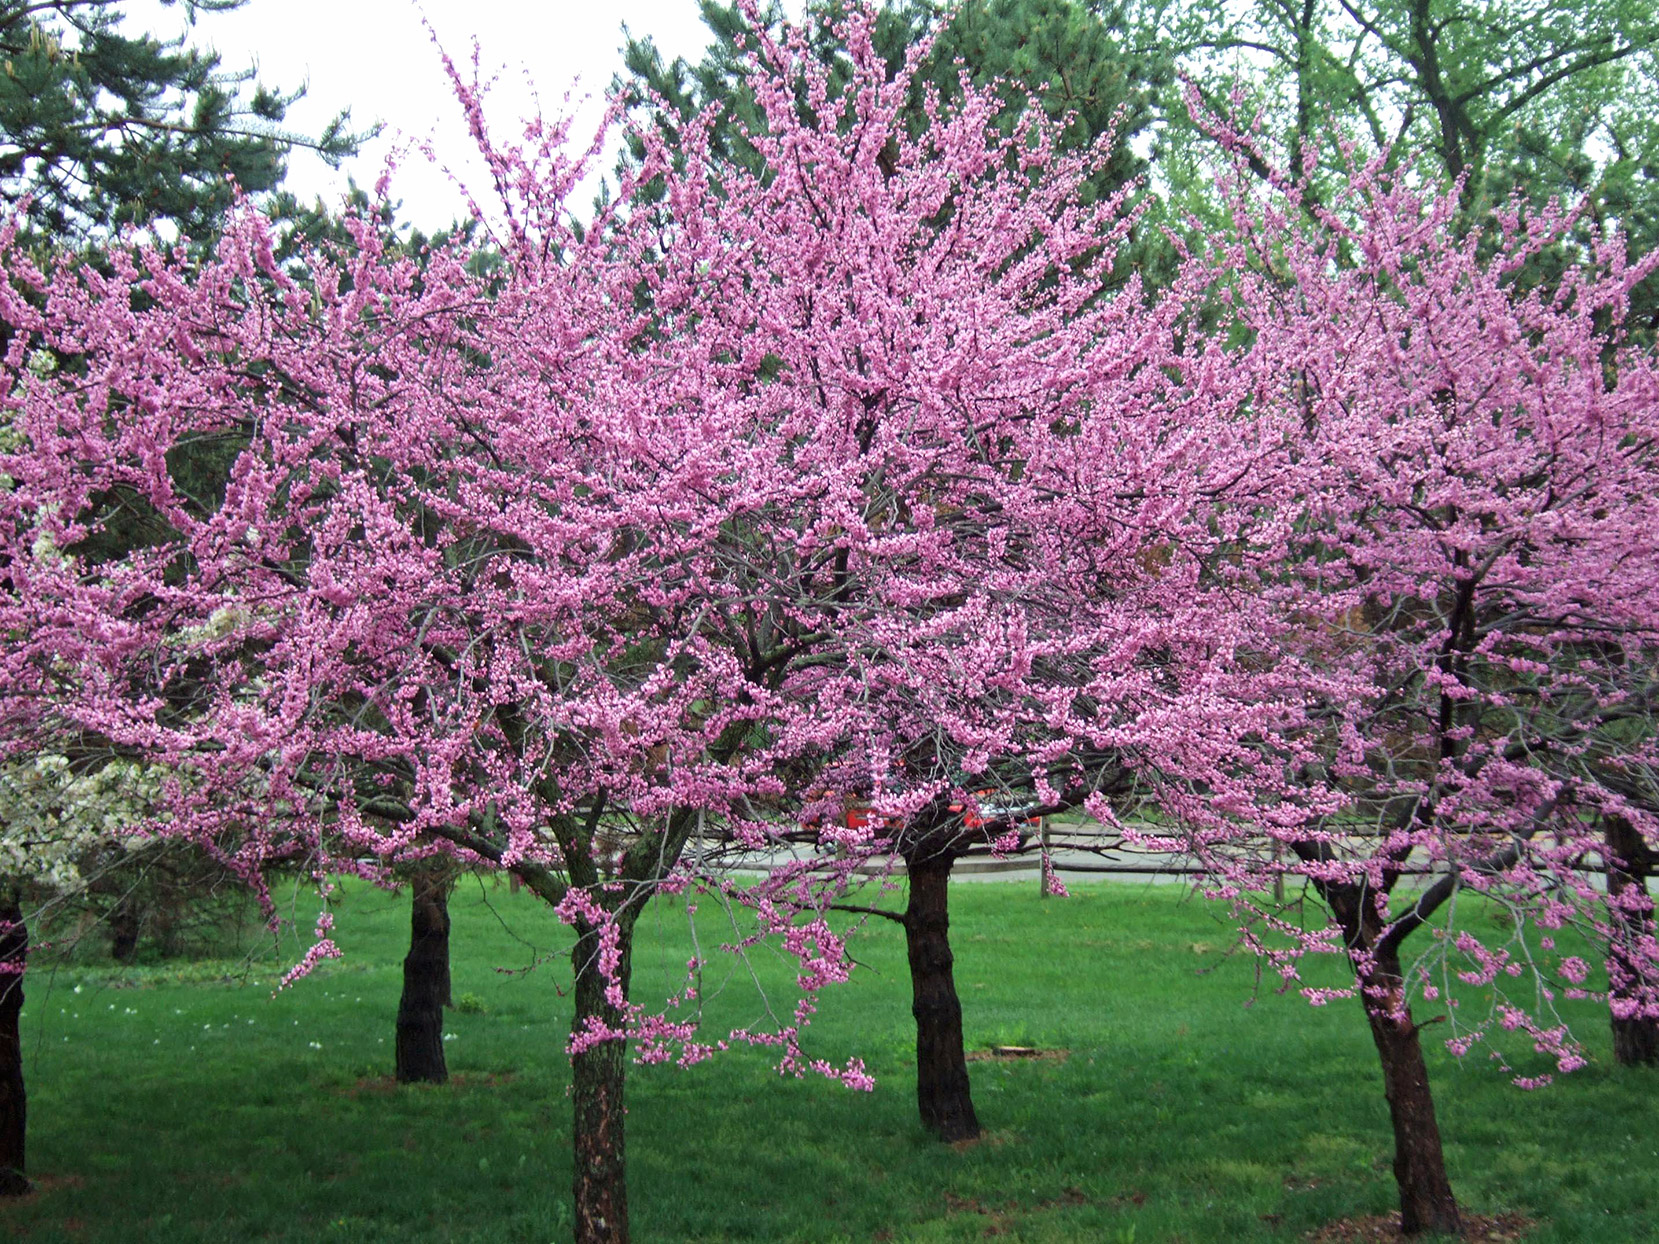 Eastern redbud, Cercis canadensis